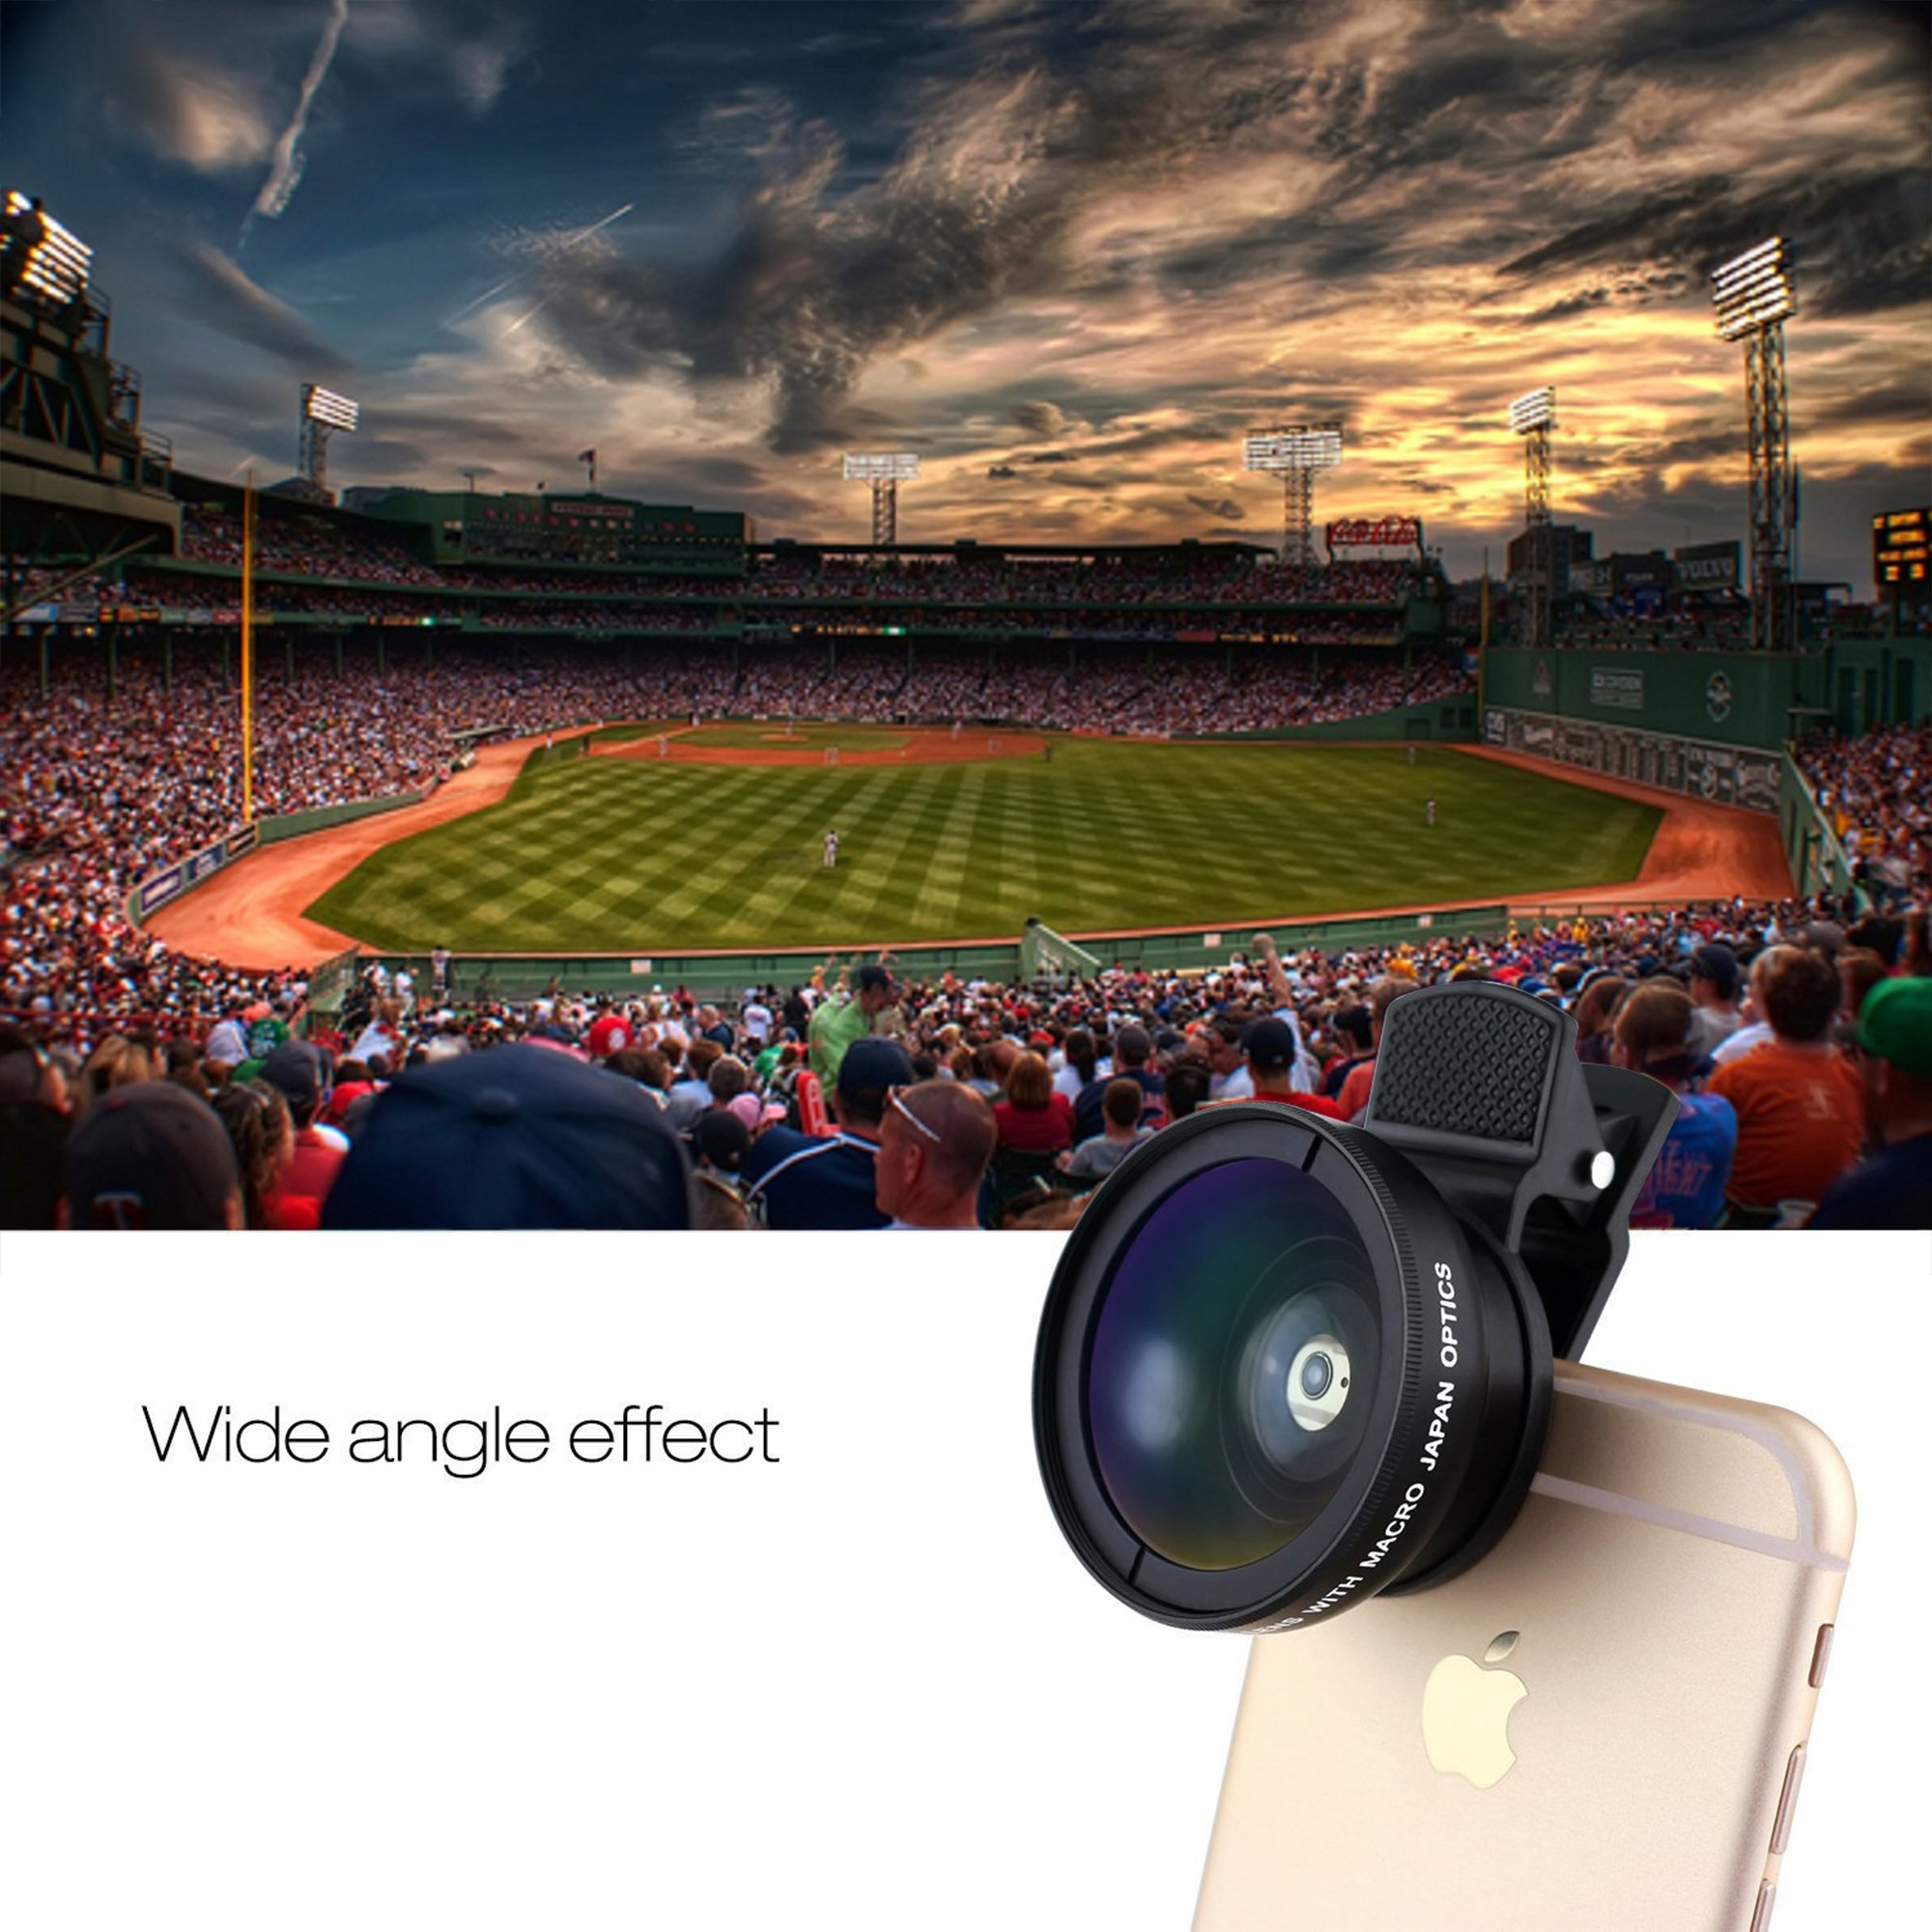 SOCIALITE Professional HD Camera Photo & Video Clip On Lens Kit for iPhone Smartphone 6s 7 8 X Plus Mobile Phone Android, & Samsung 0.45x Super Wide Angle Lens 12.5x Macro by Socialite (Image #2)